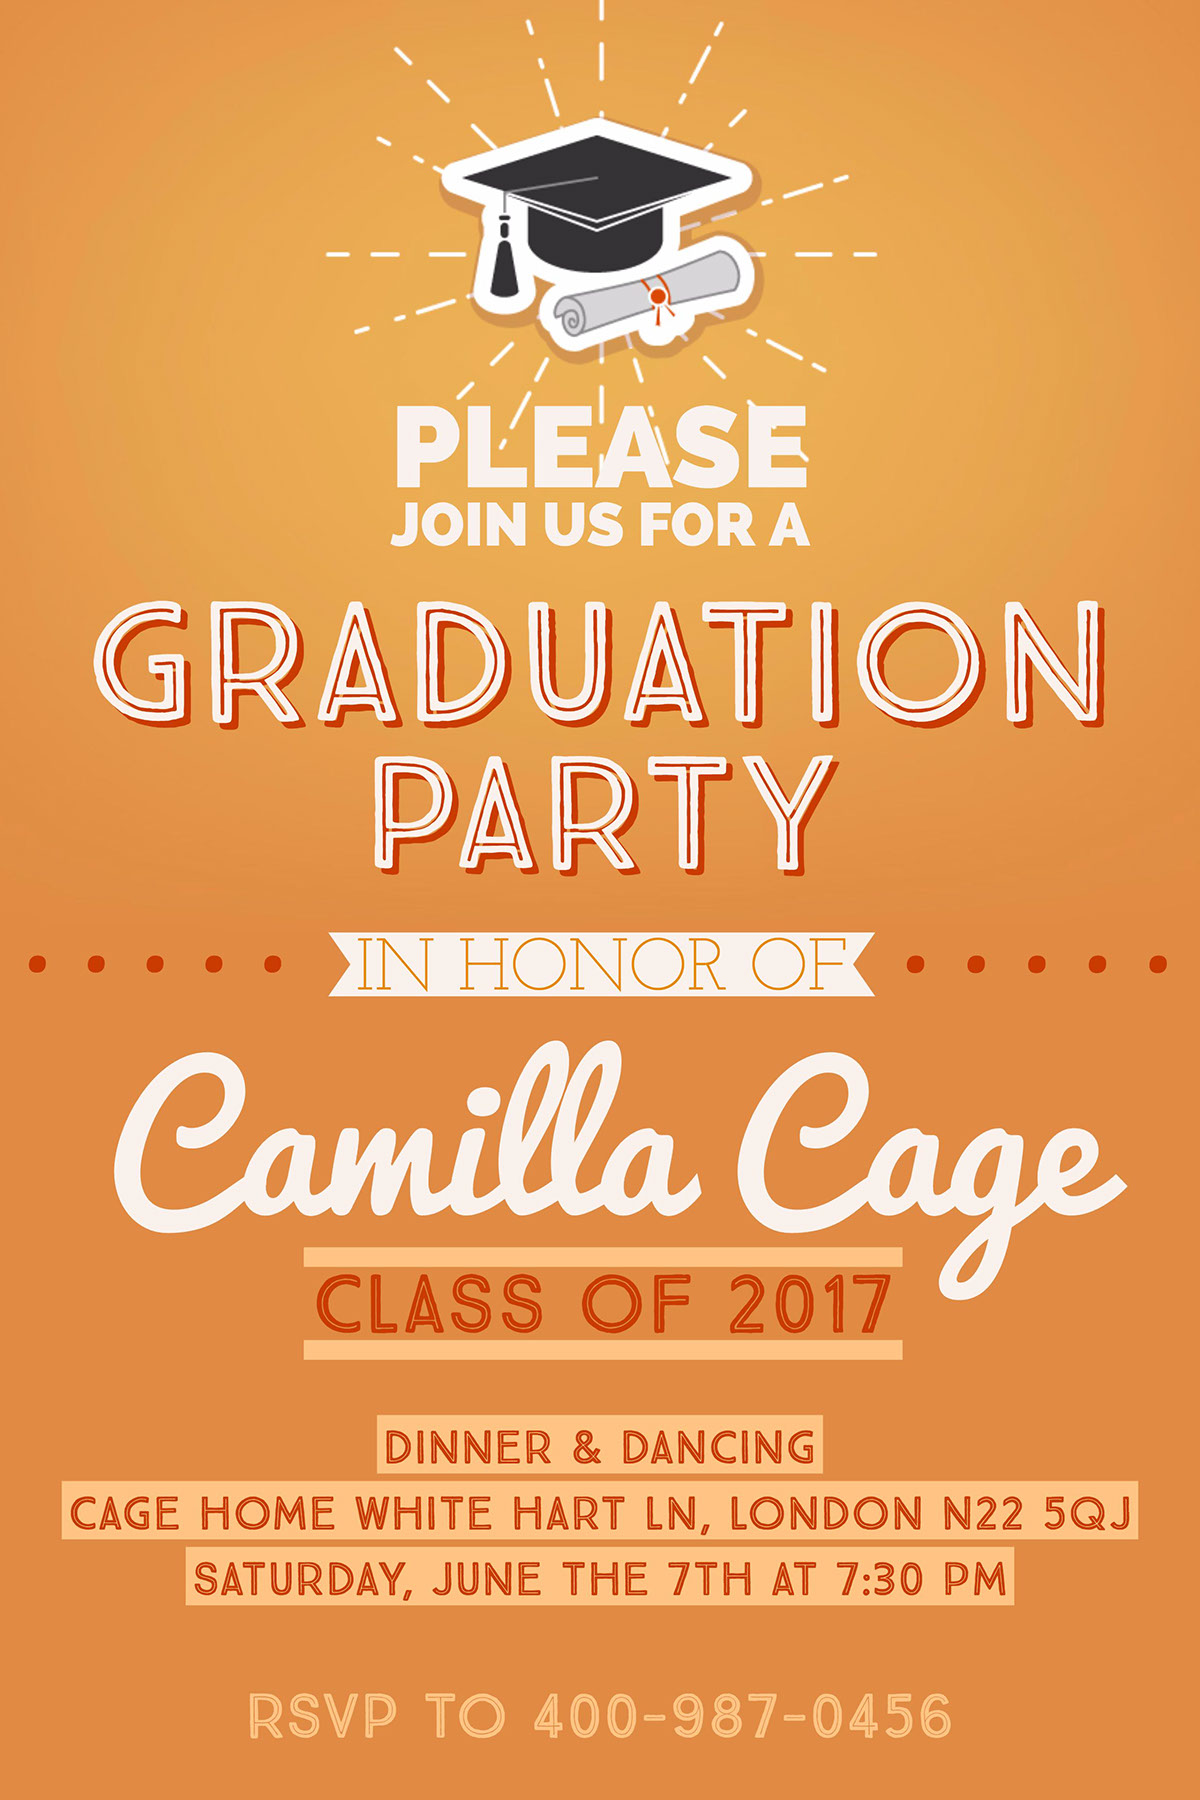 Camilla Cage Camilla Cage Dinner & Dancing Cage home White Hart Ln, London N22 5QJ Saturday, June the 7th at 7:30 pm    Graduation Please join us for a Party class of 2017 RSVP to 400-987-0456 in honor of . . . . .  . . . . .